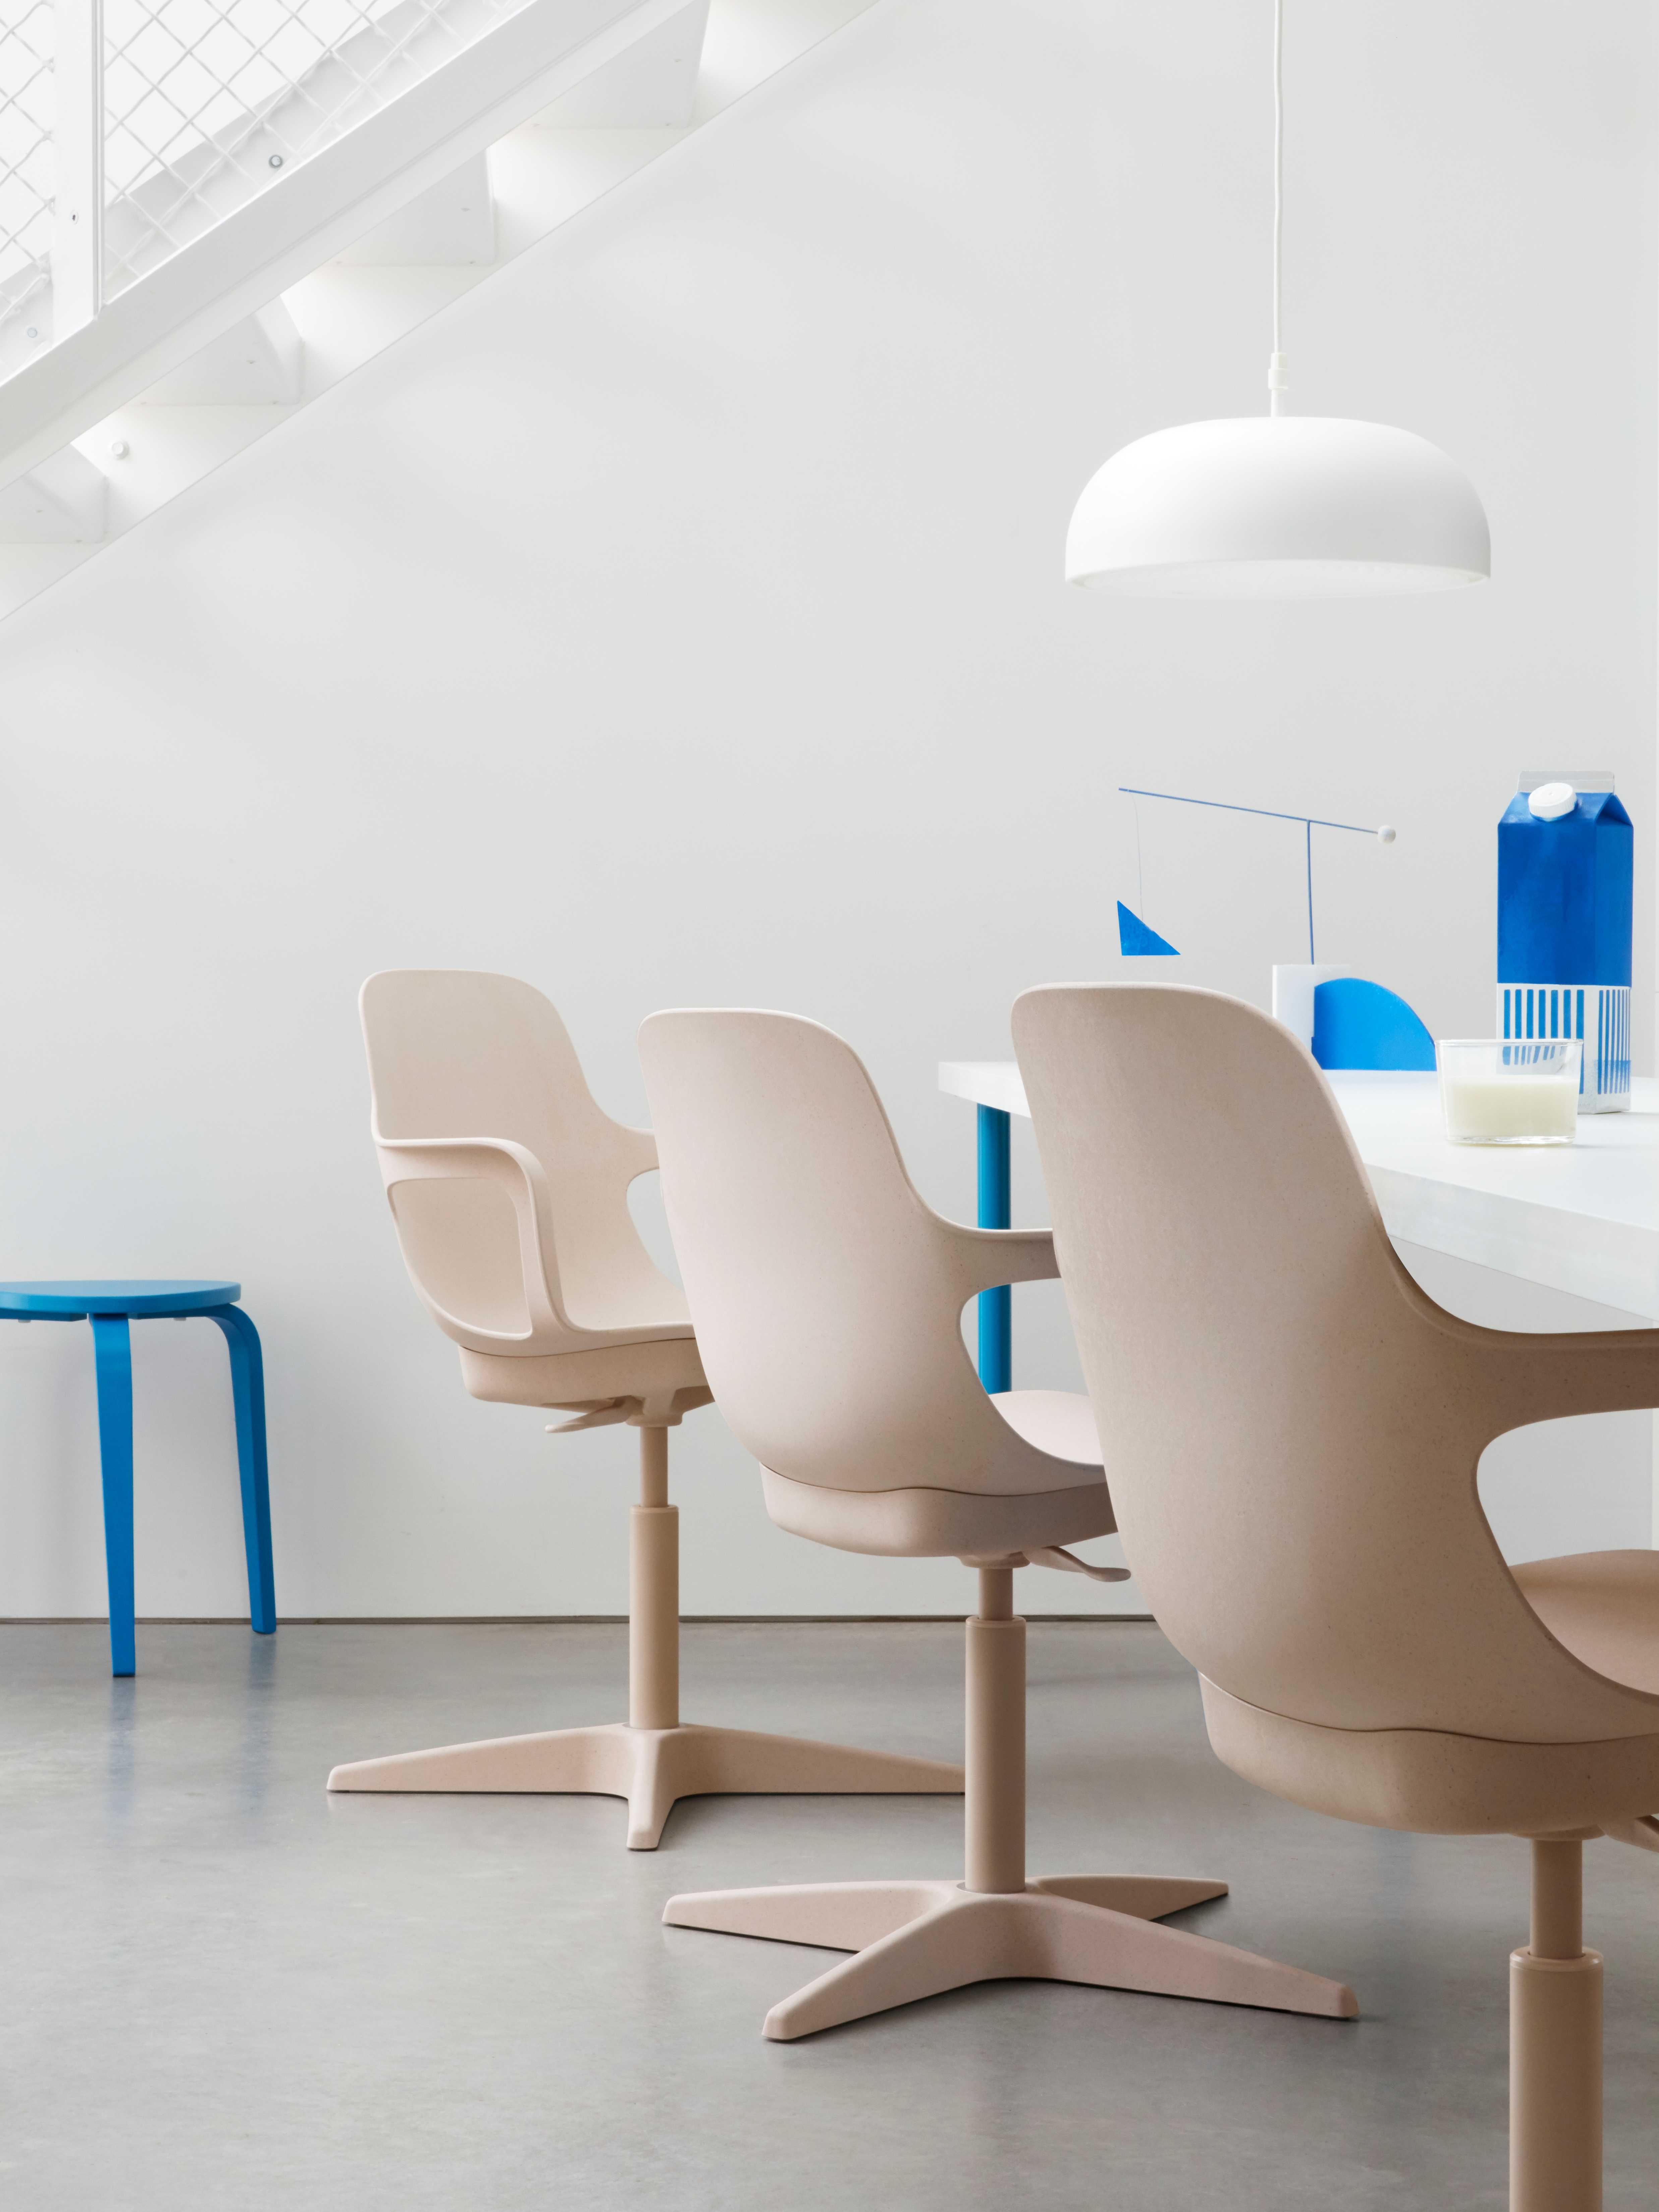 Three beige swivel ODGER chairs next to a long white table with a white pendant lamp and a blue stool.